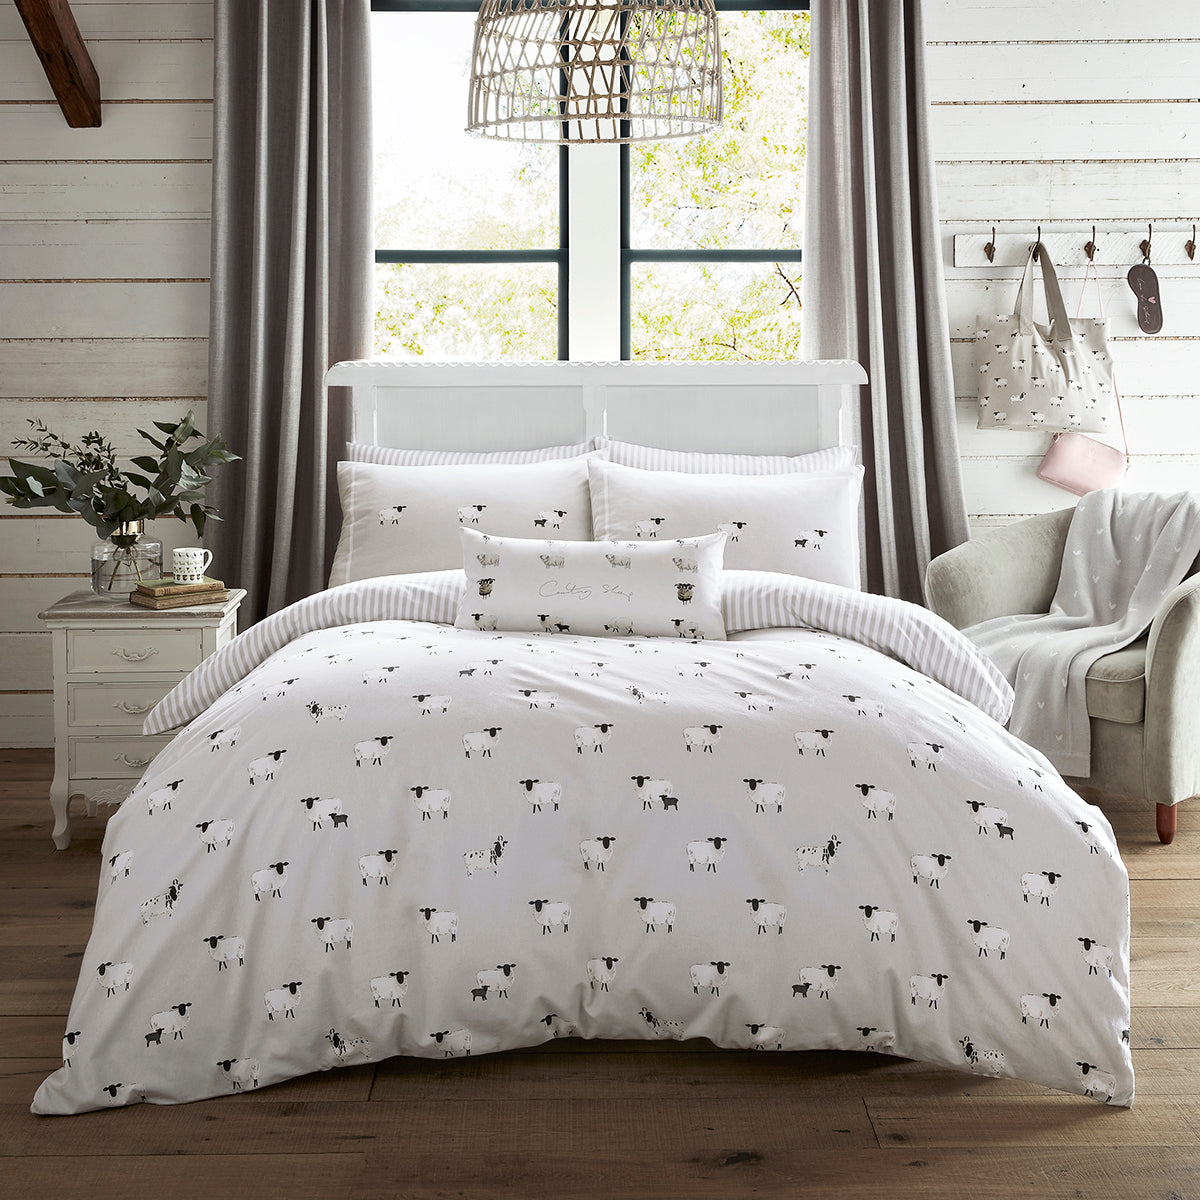 Sheep Bedding Set